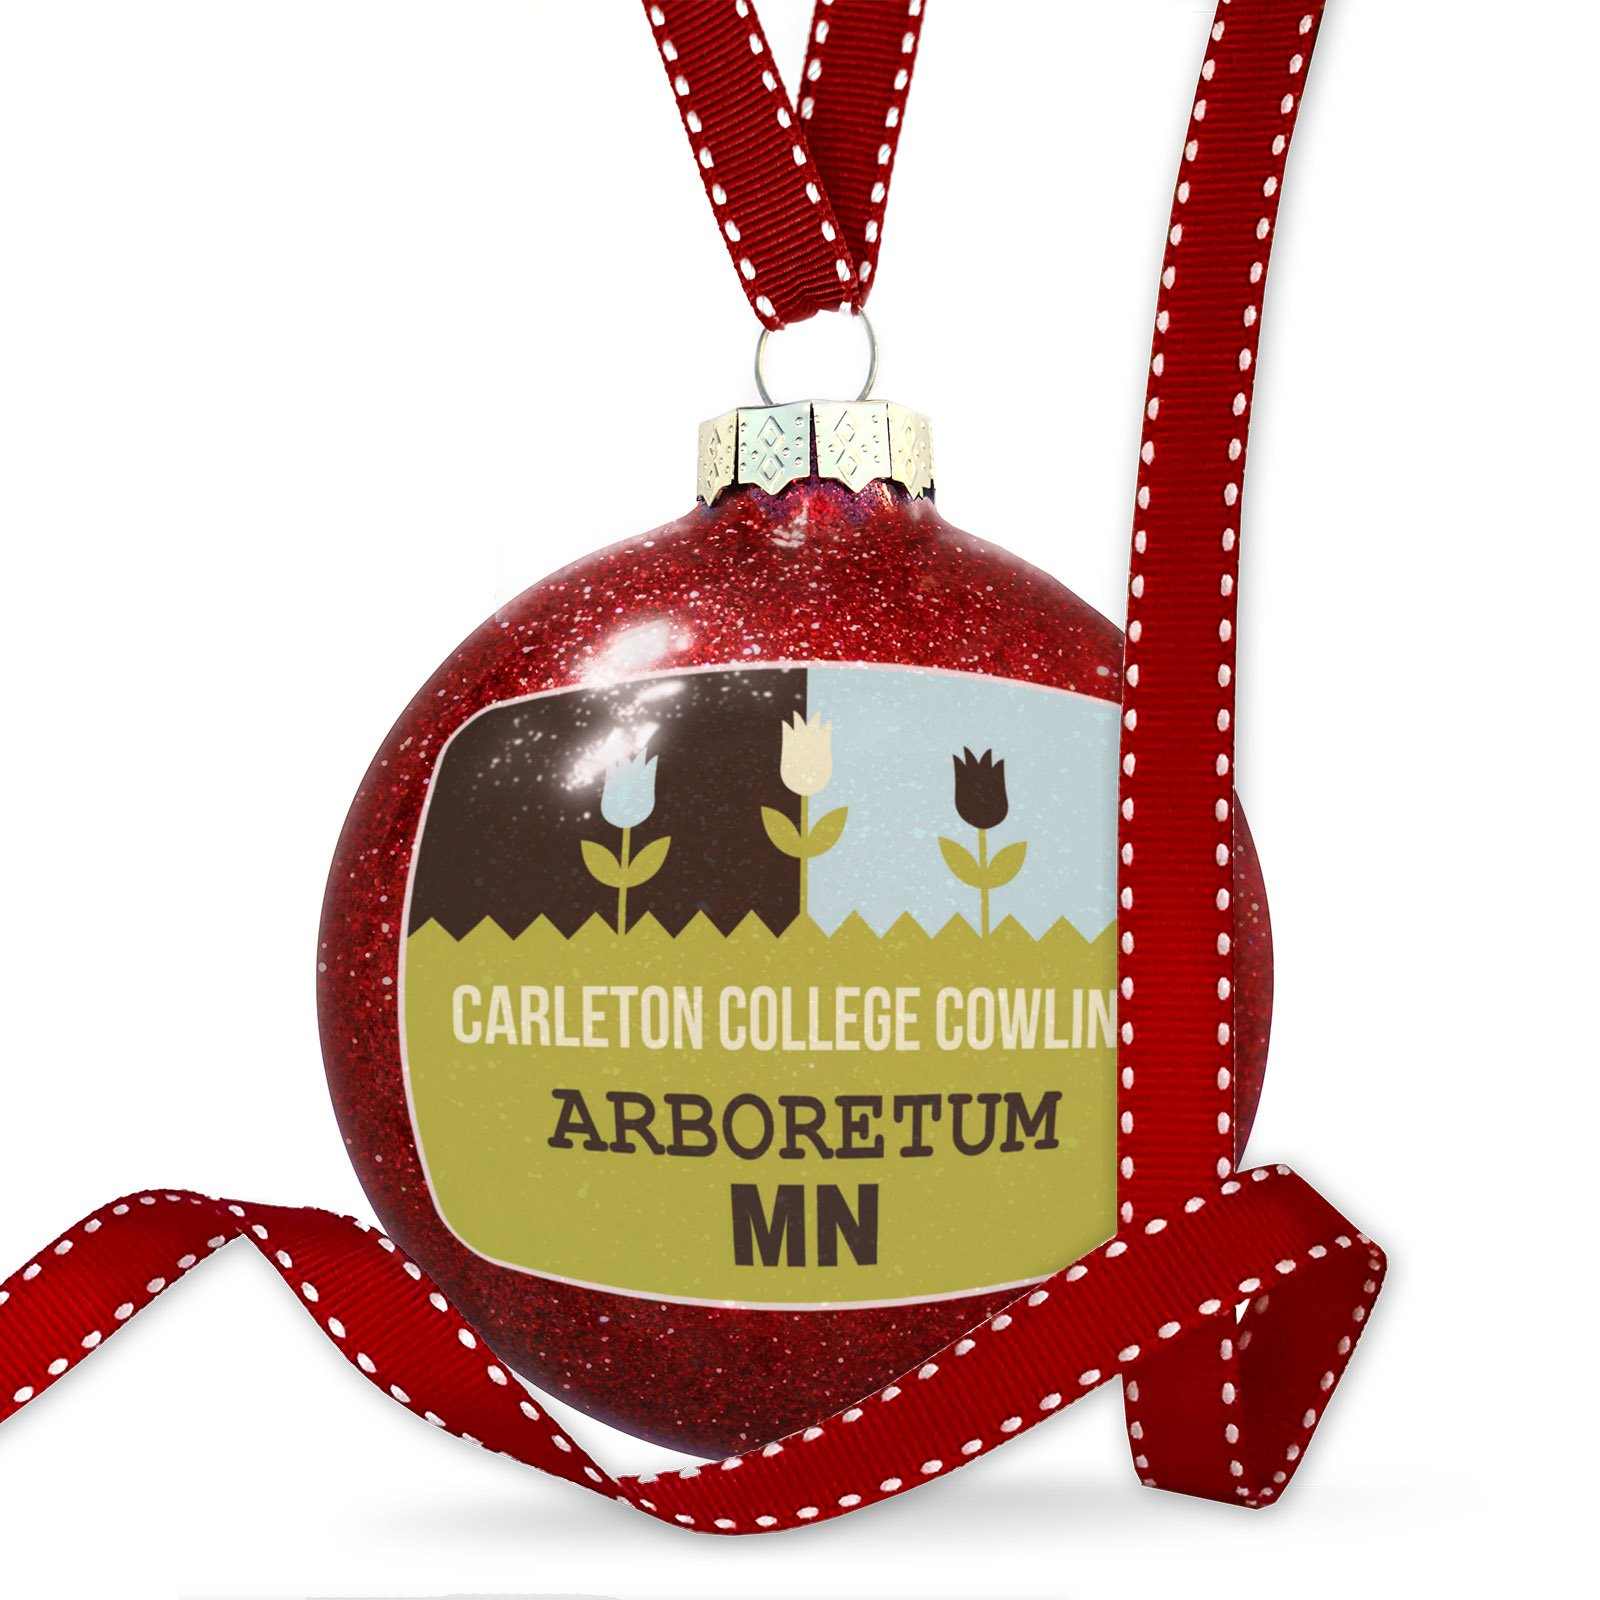 Christmas Decoration US Gardens Carleton College Cowling Arboretum - MN Ornament